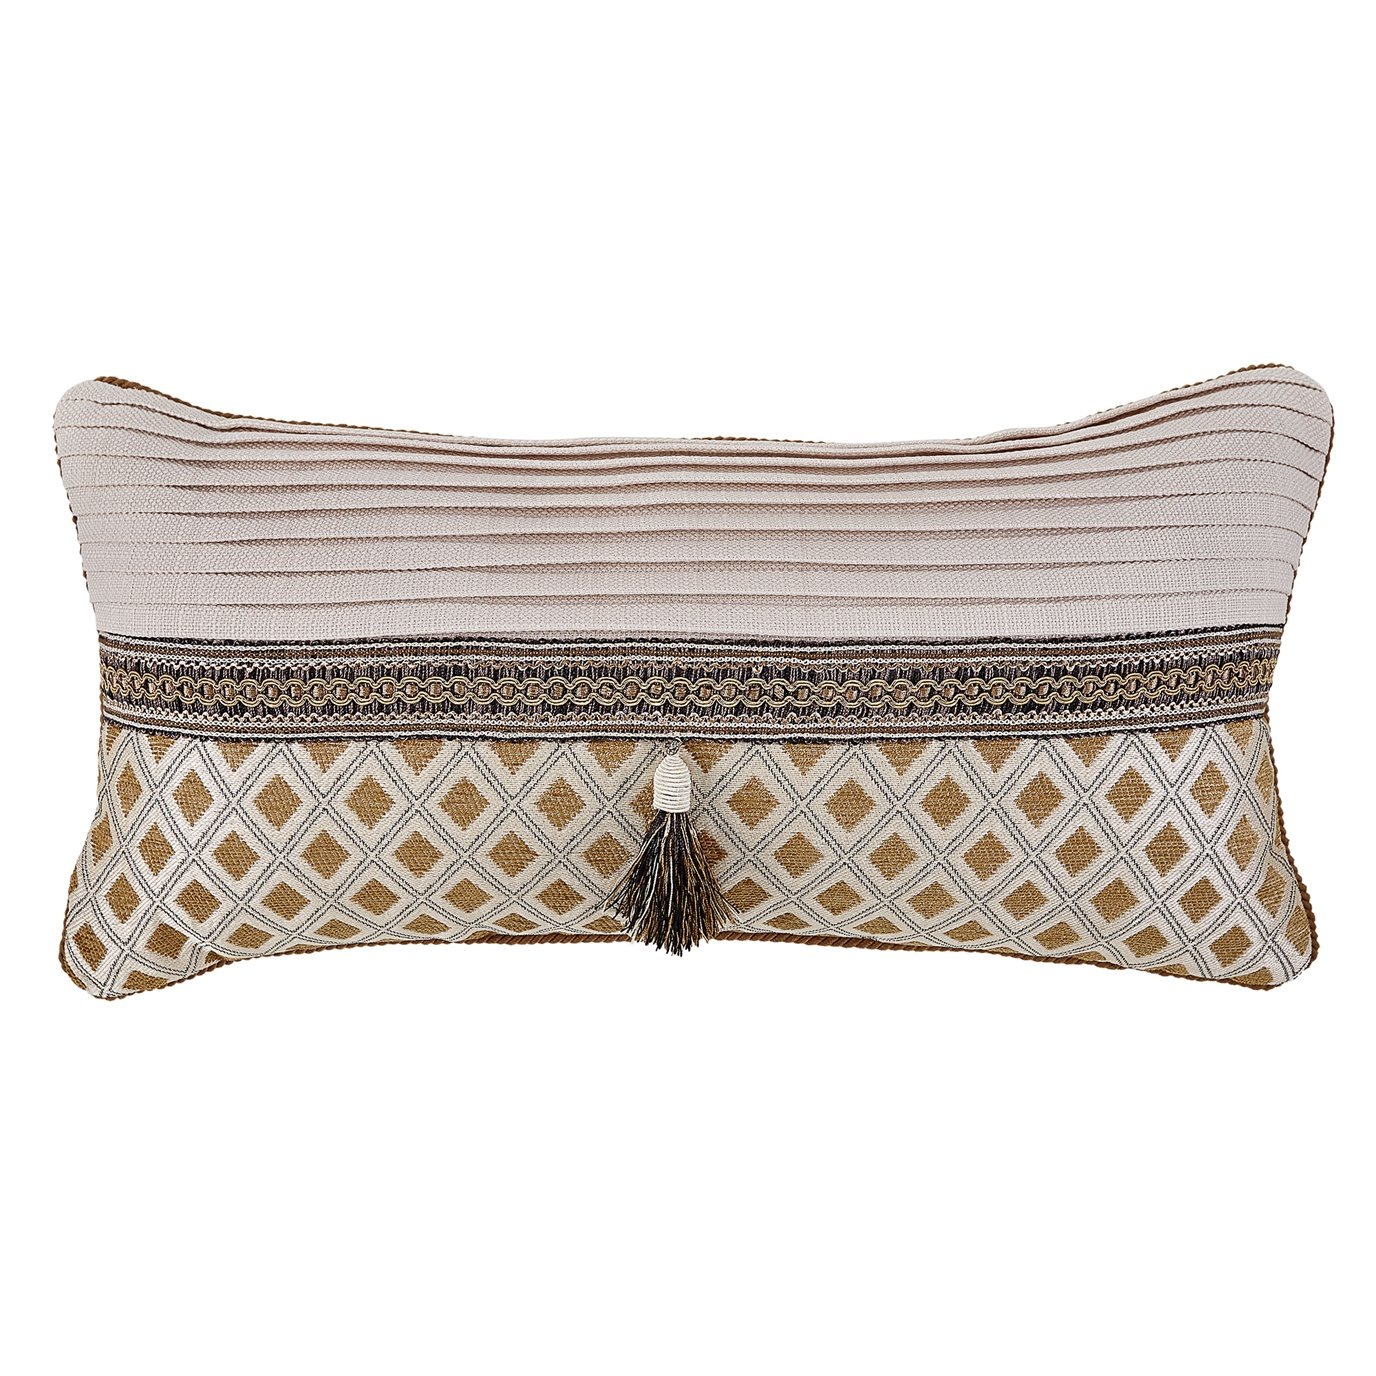 Philomena 22x11 Boudoir Pillow